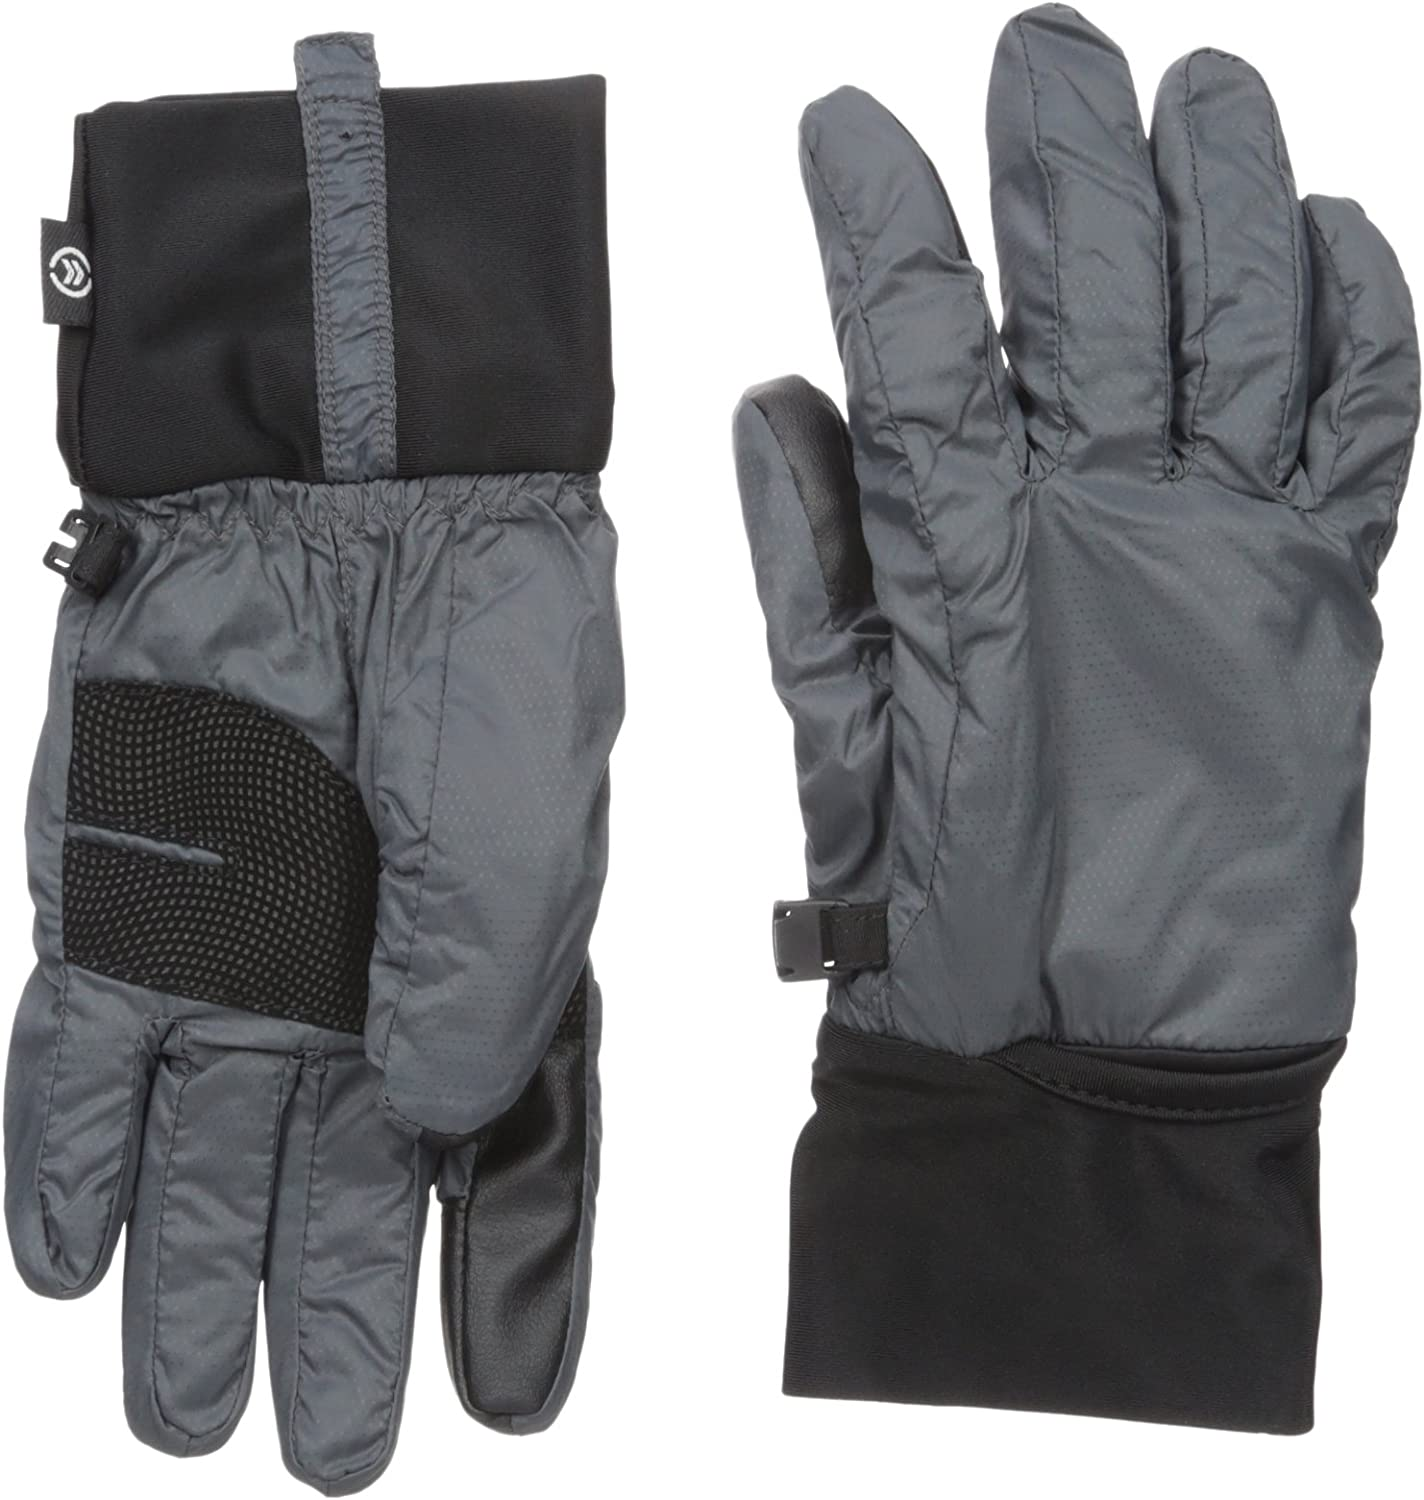 Isotoner Women's Packable Cuff Gloves with Smartouch Technology